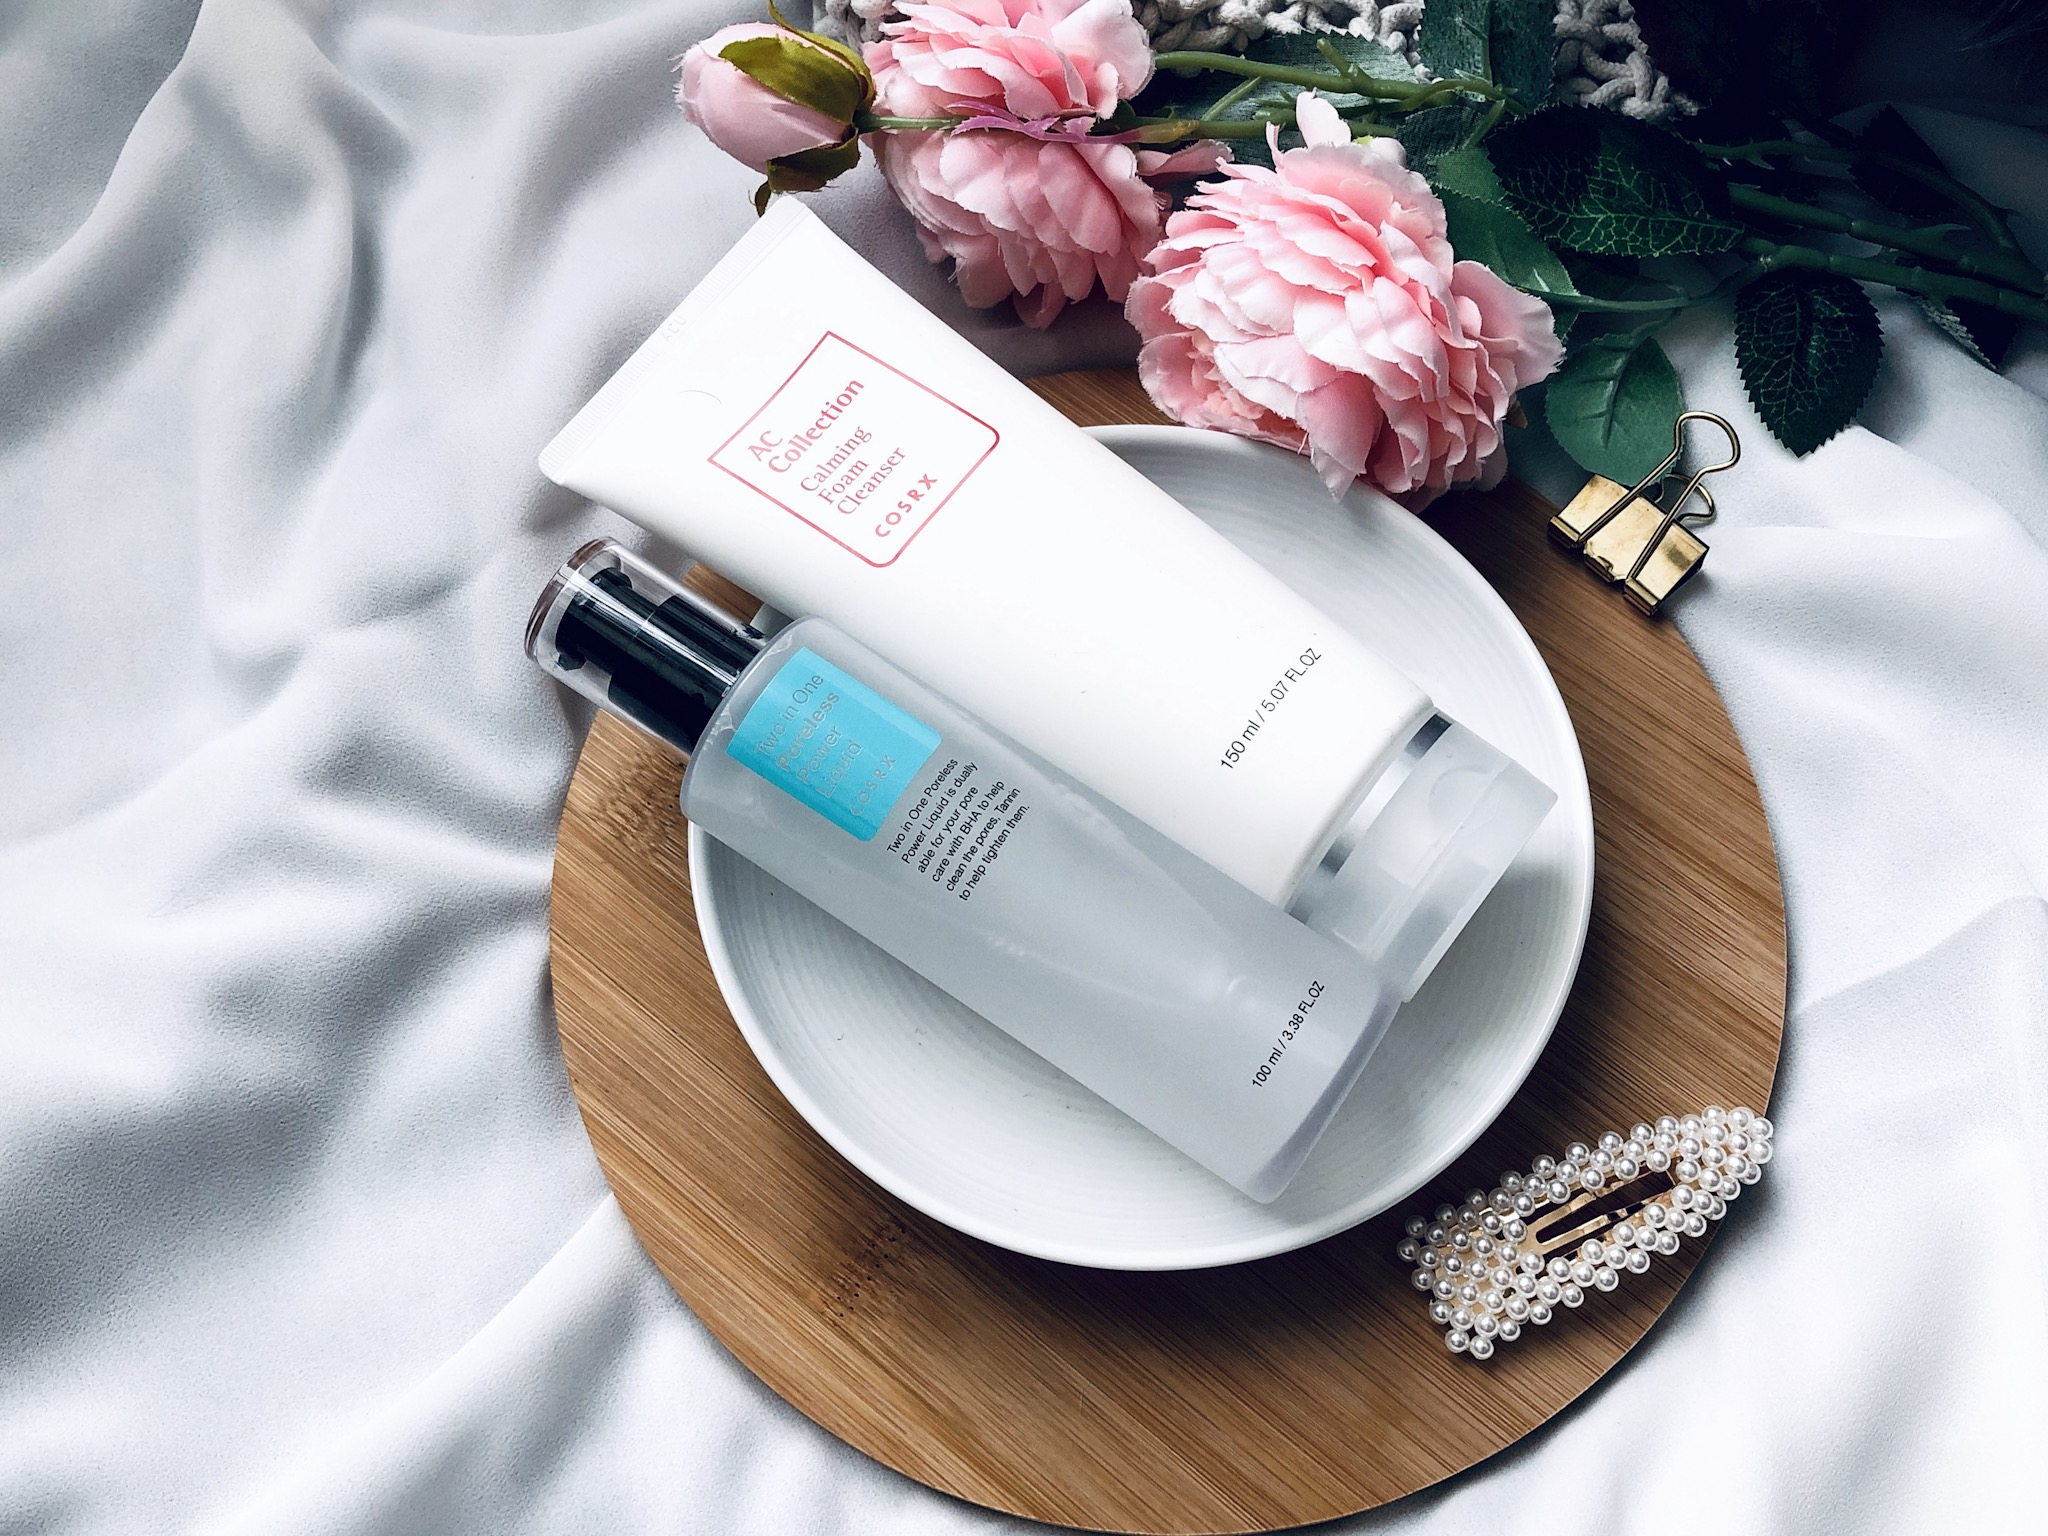 Cosrx Two in One Poreless Power Liquid & Calming Foam Cleanser